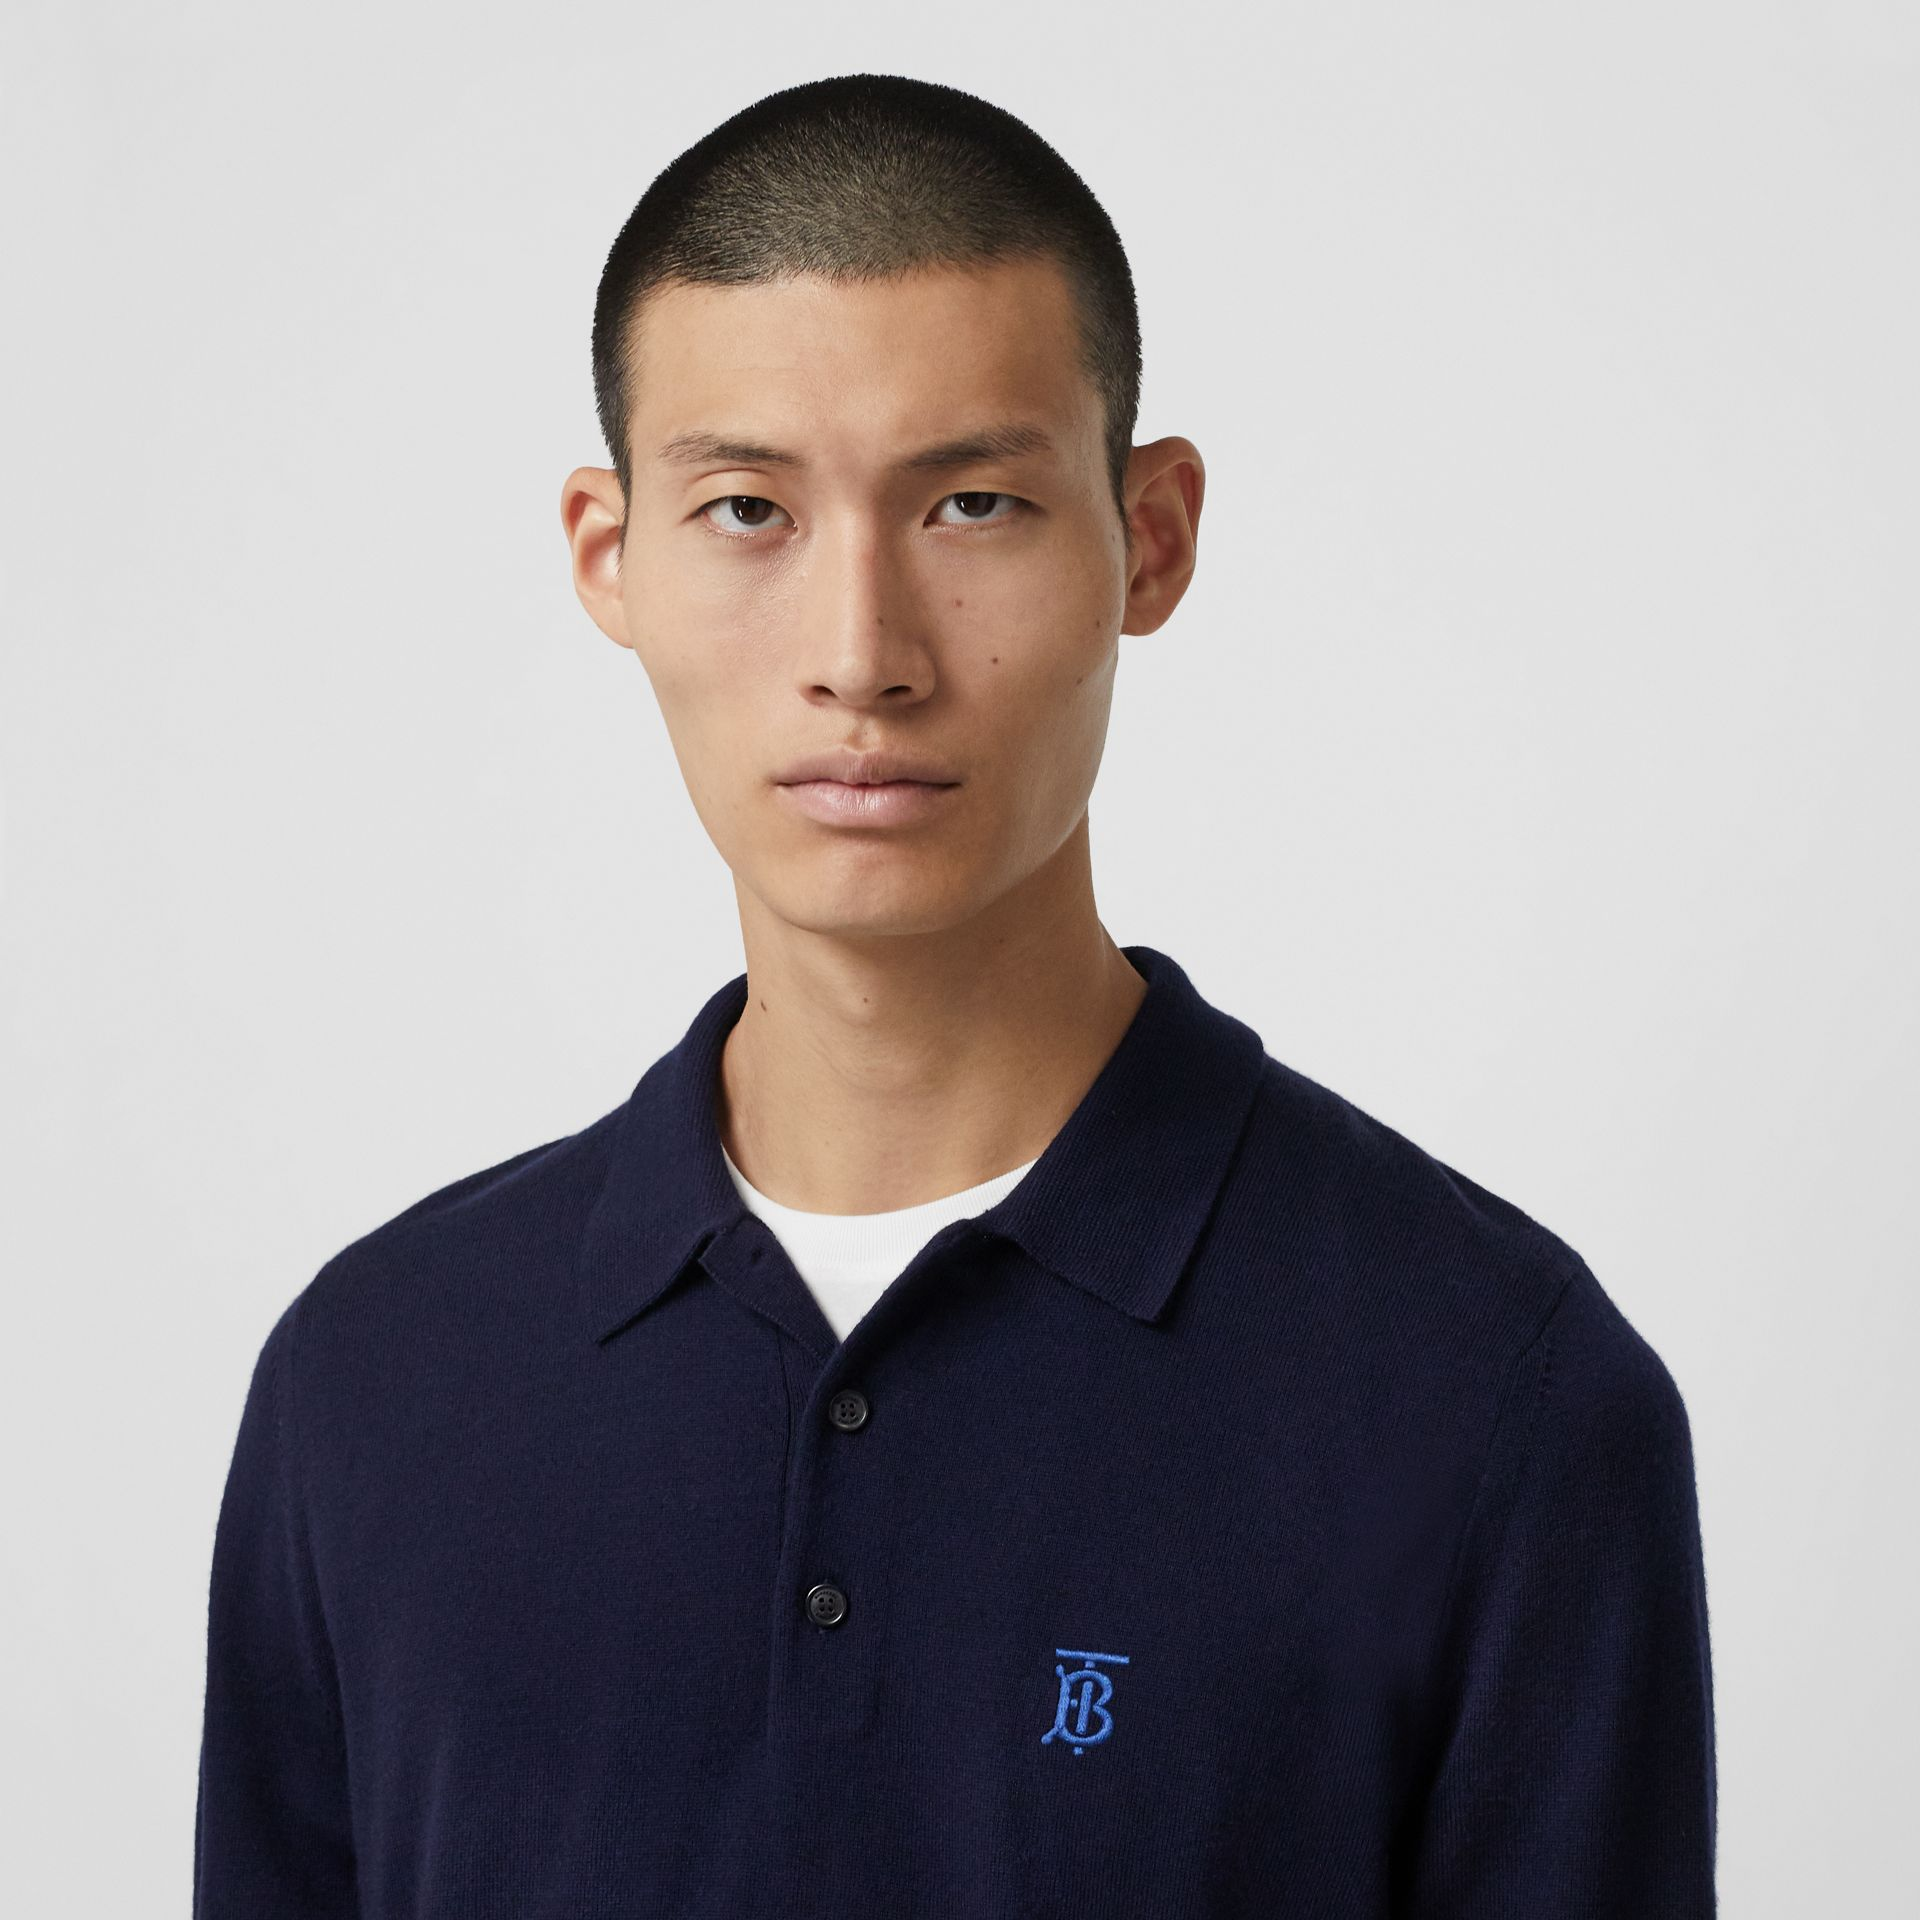 Long-sleeve Monogram Motif Merino Wool Polo Shirt in Navy - Men | Burberry - gallery image 1